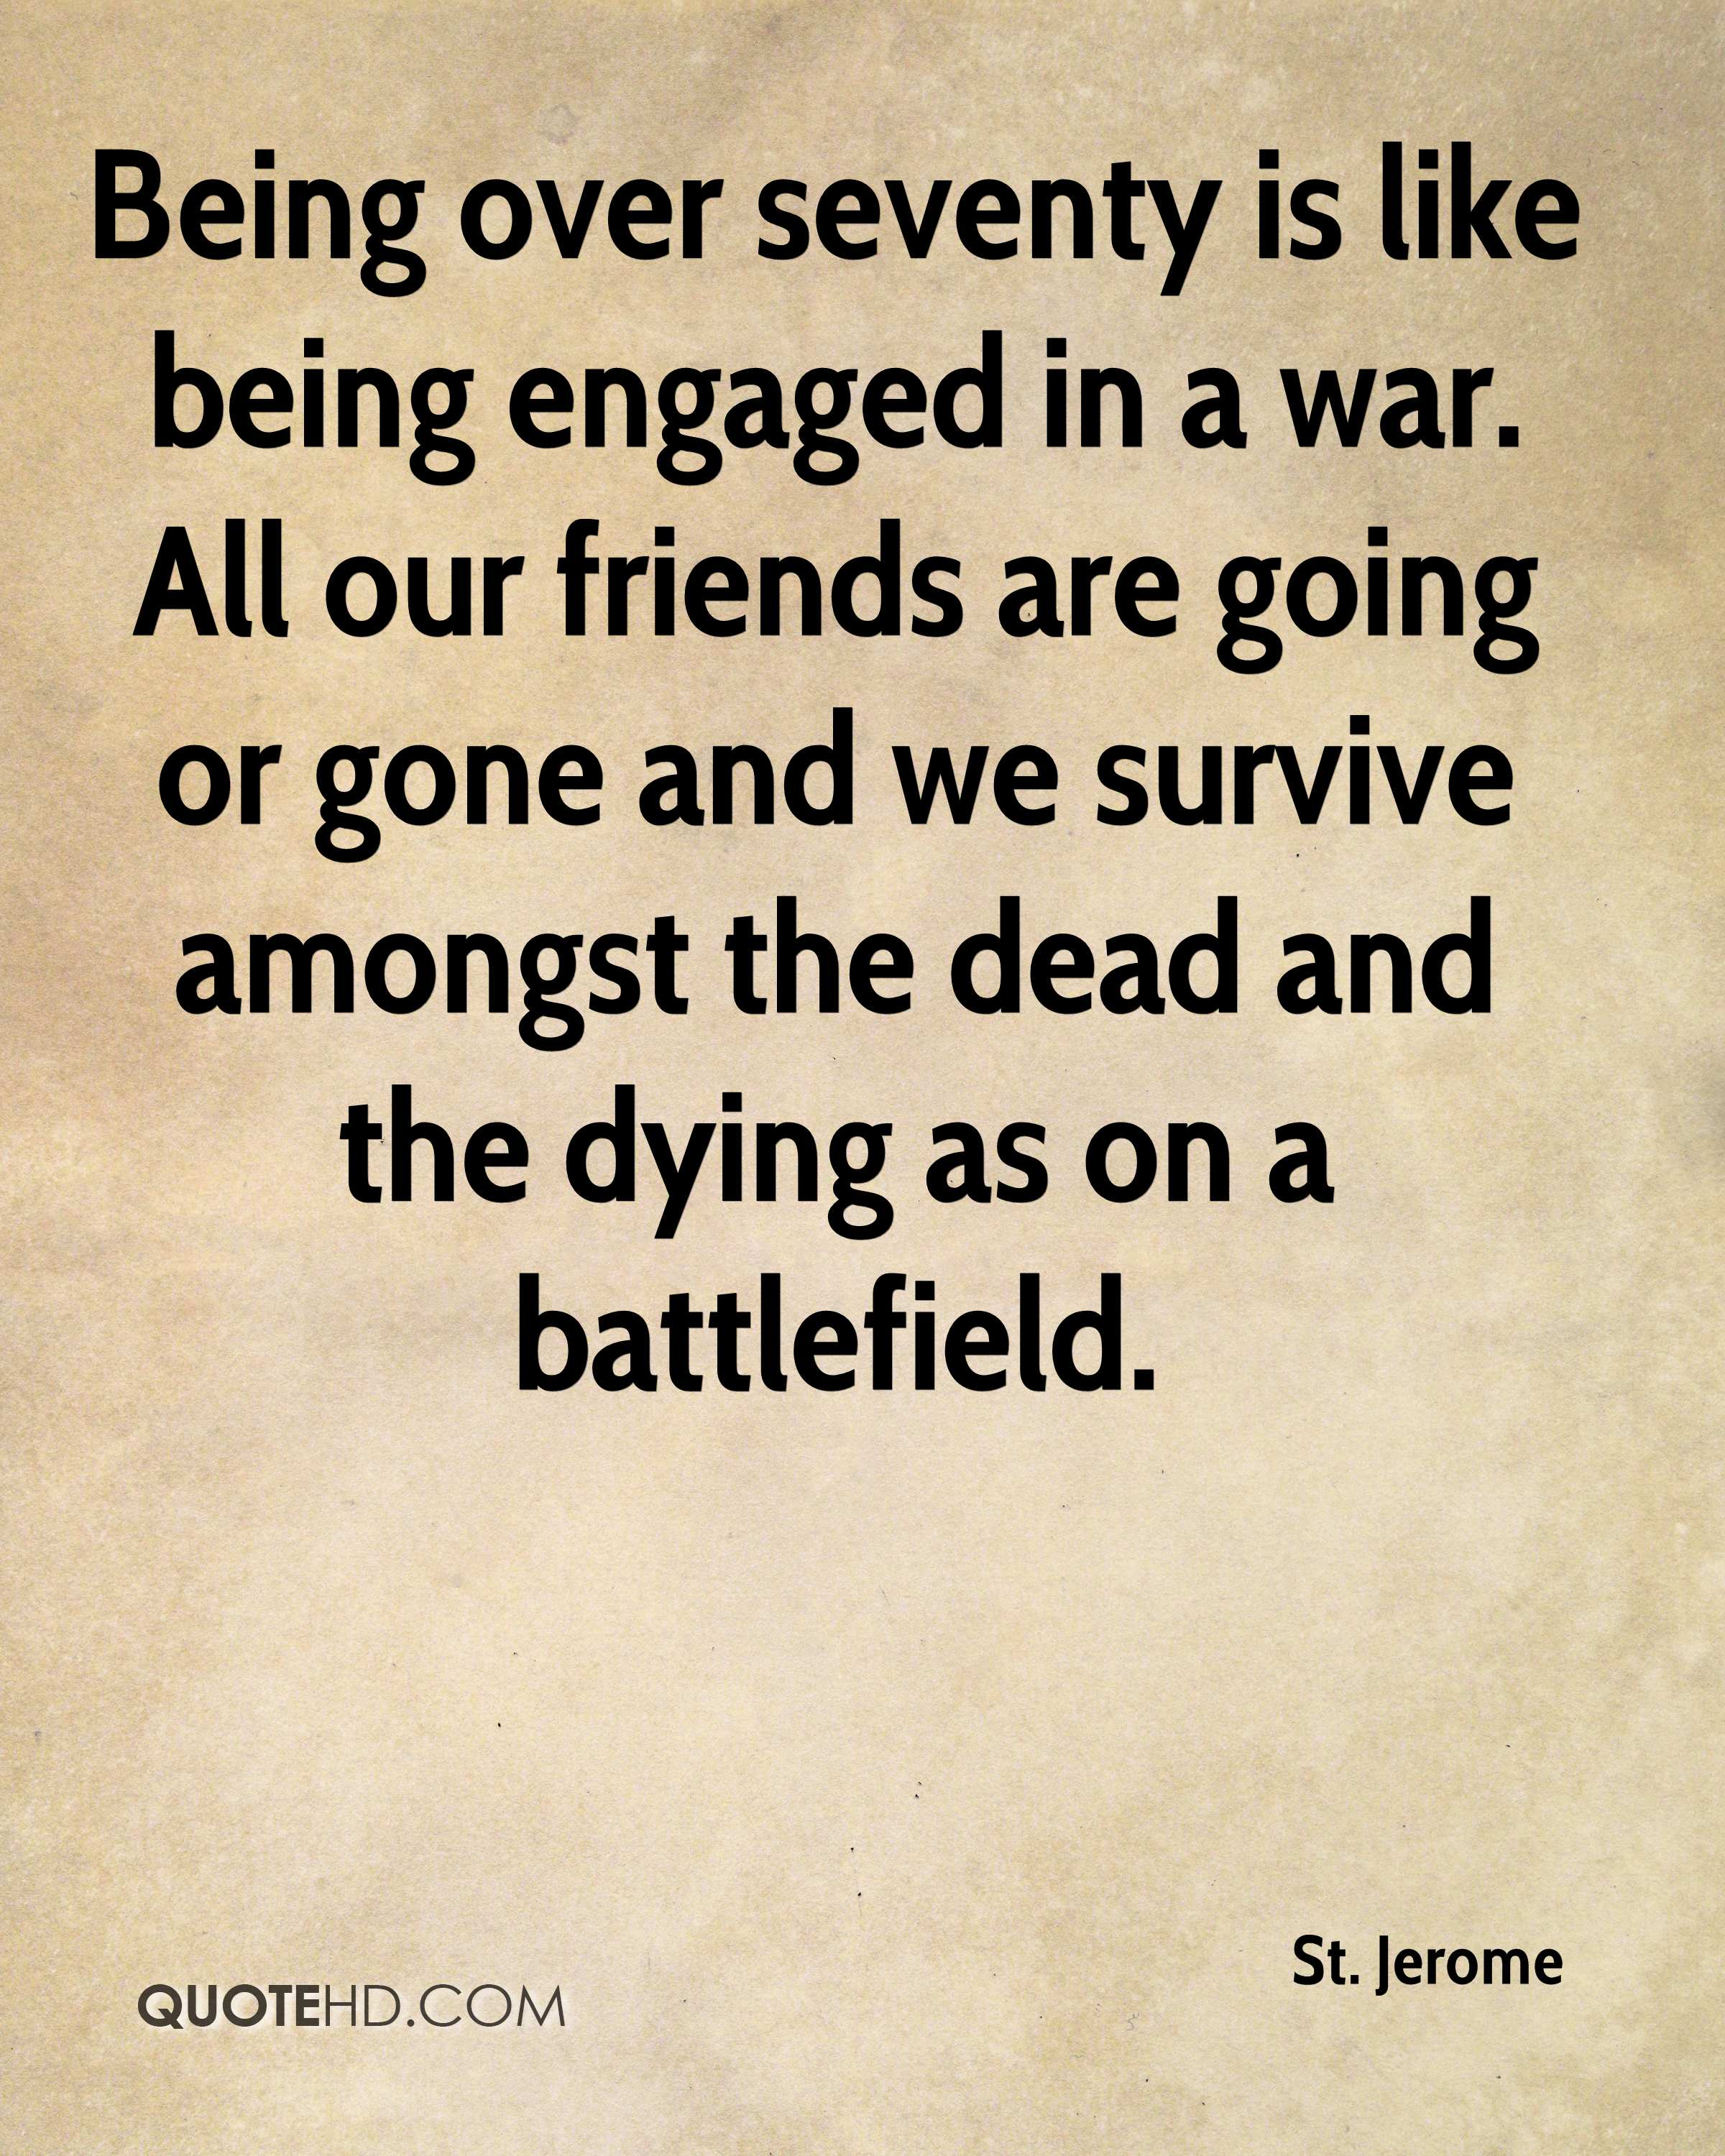 Being over seventy is like being engaged in a war. All our friends are going or gone and we survive amongst the dead and the dying as on a battlefield.